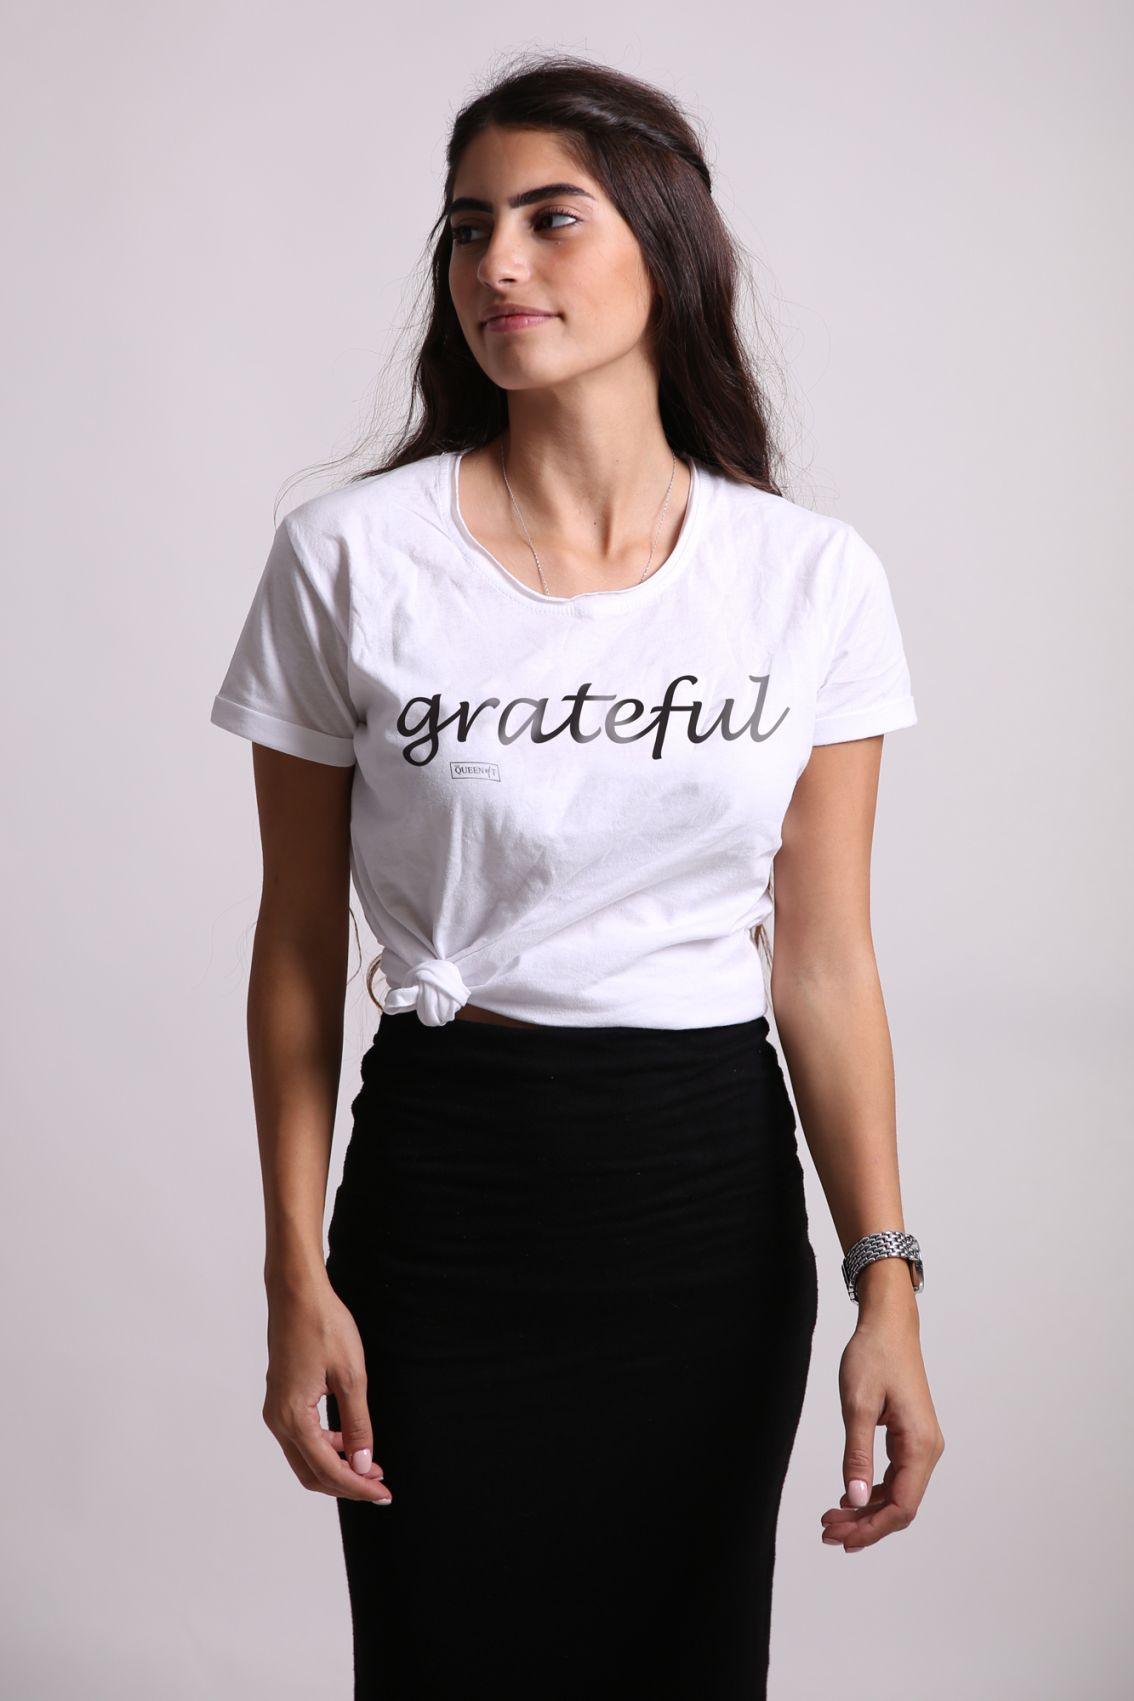 grateful - Tshirt